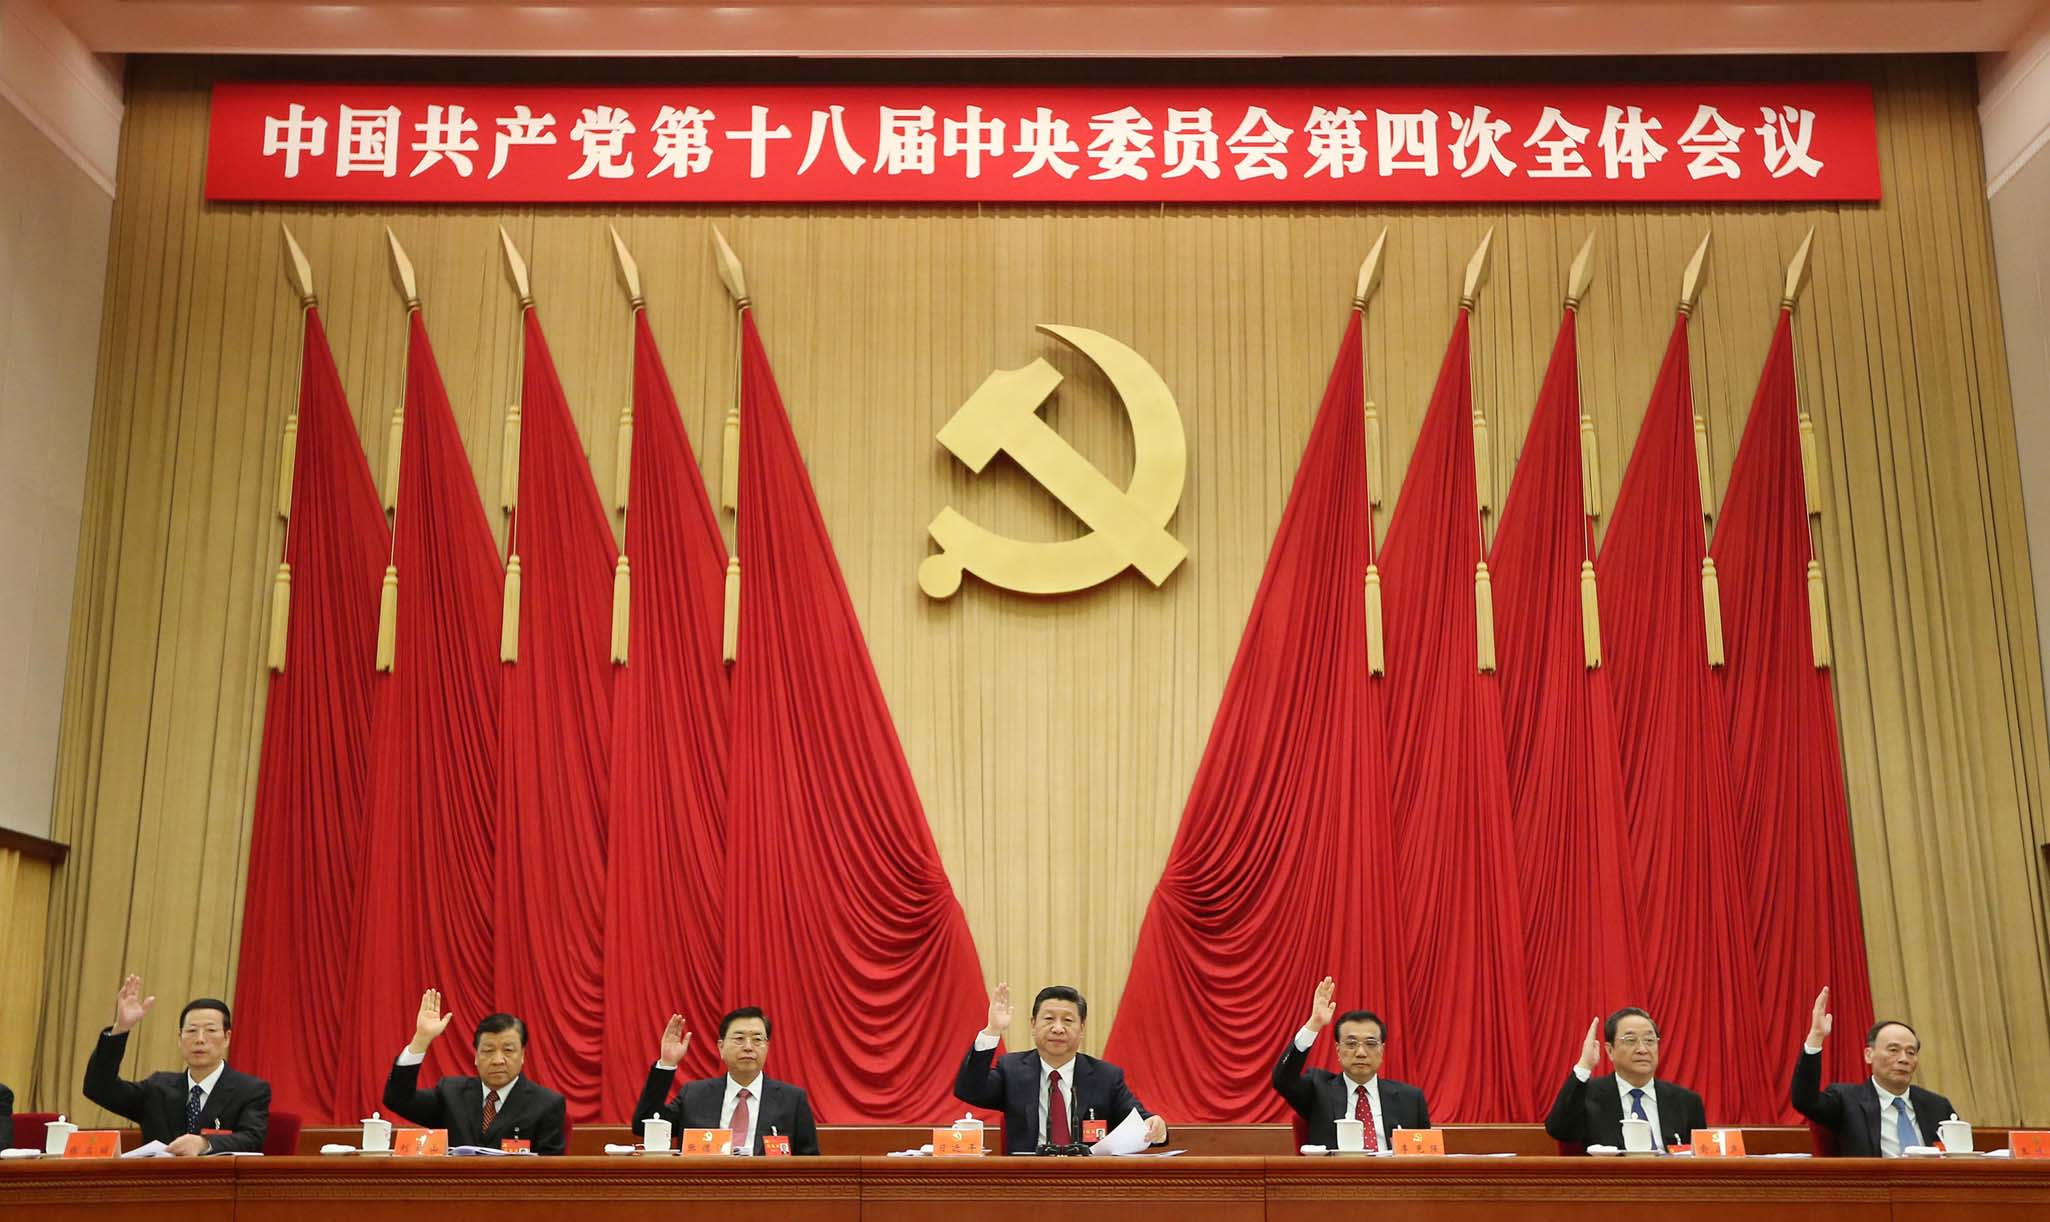 More companies are writing China's Communist Party into their charters -  Nikkei Asia